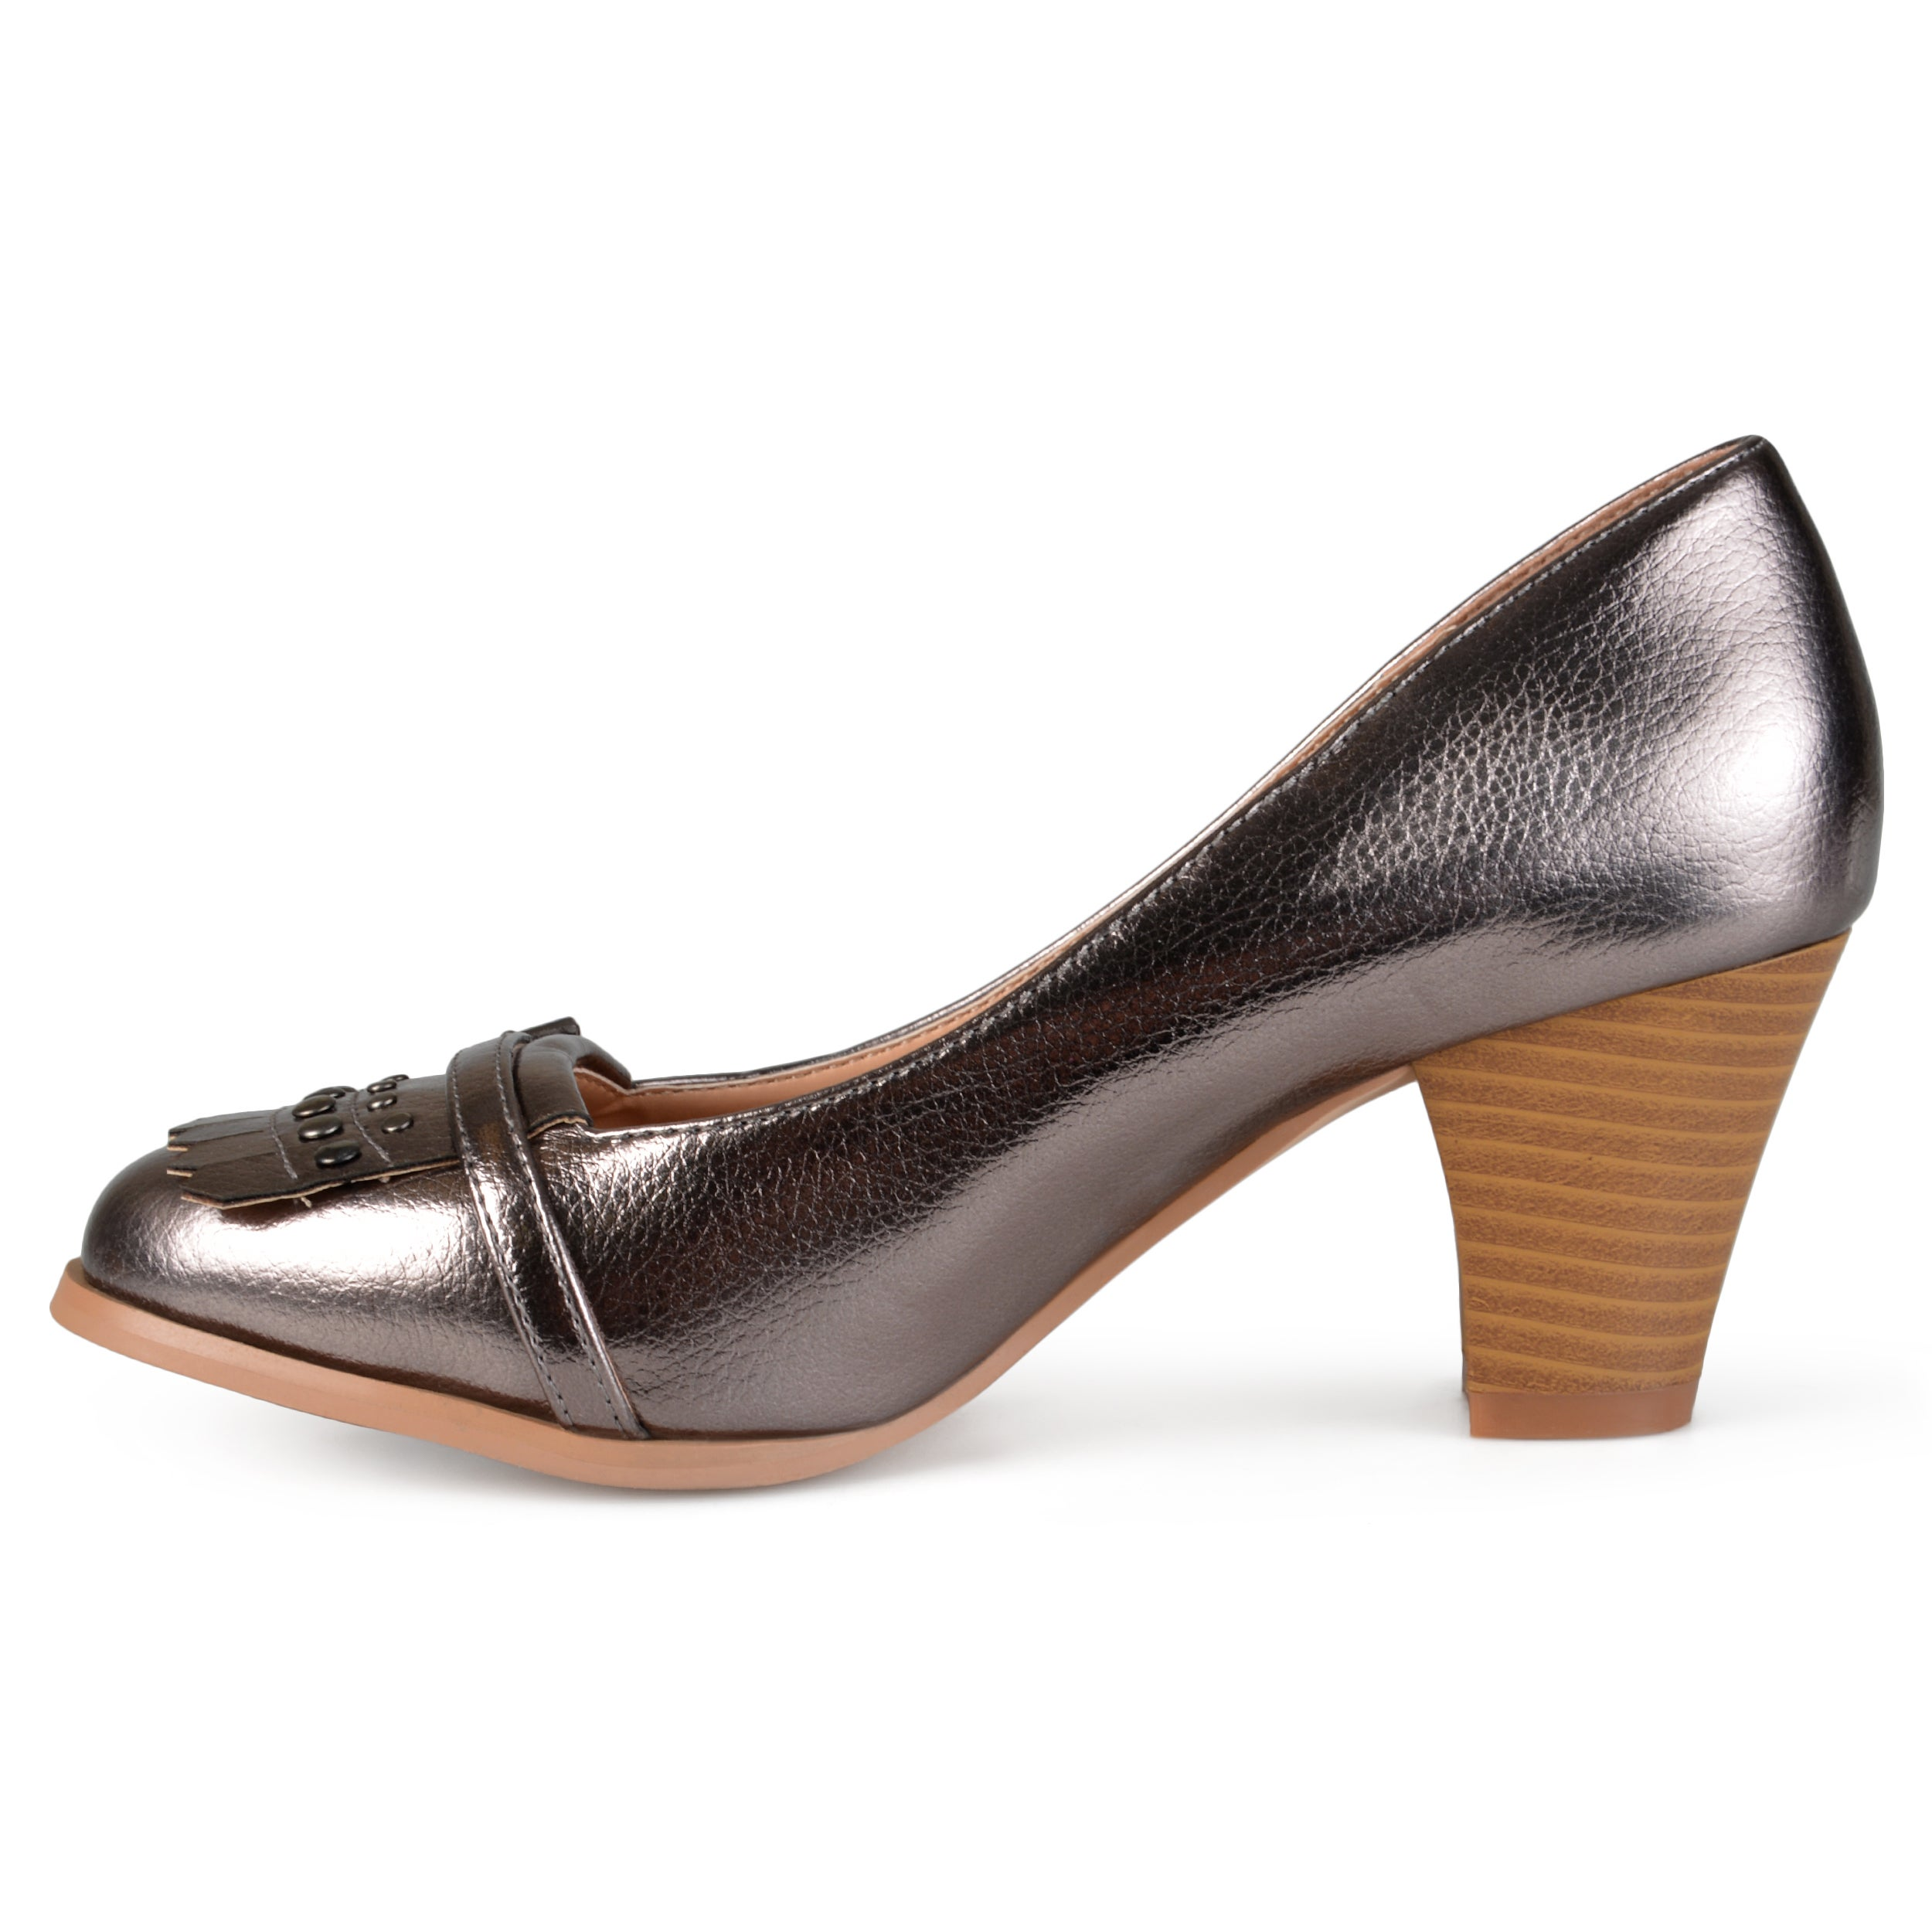 d96c7c42d7d Shop Journee Collection Women s  Nora  Stacked Heel Loafer Pumps - Ships To  Canada - Overstock - 10789838